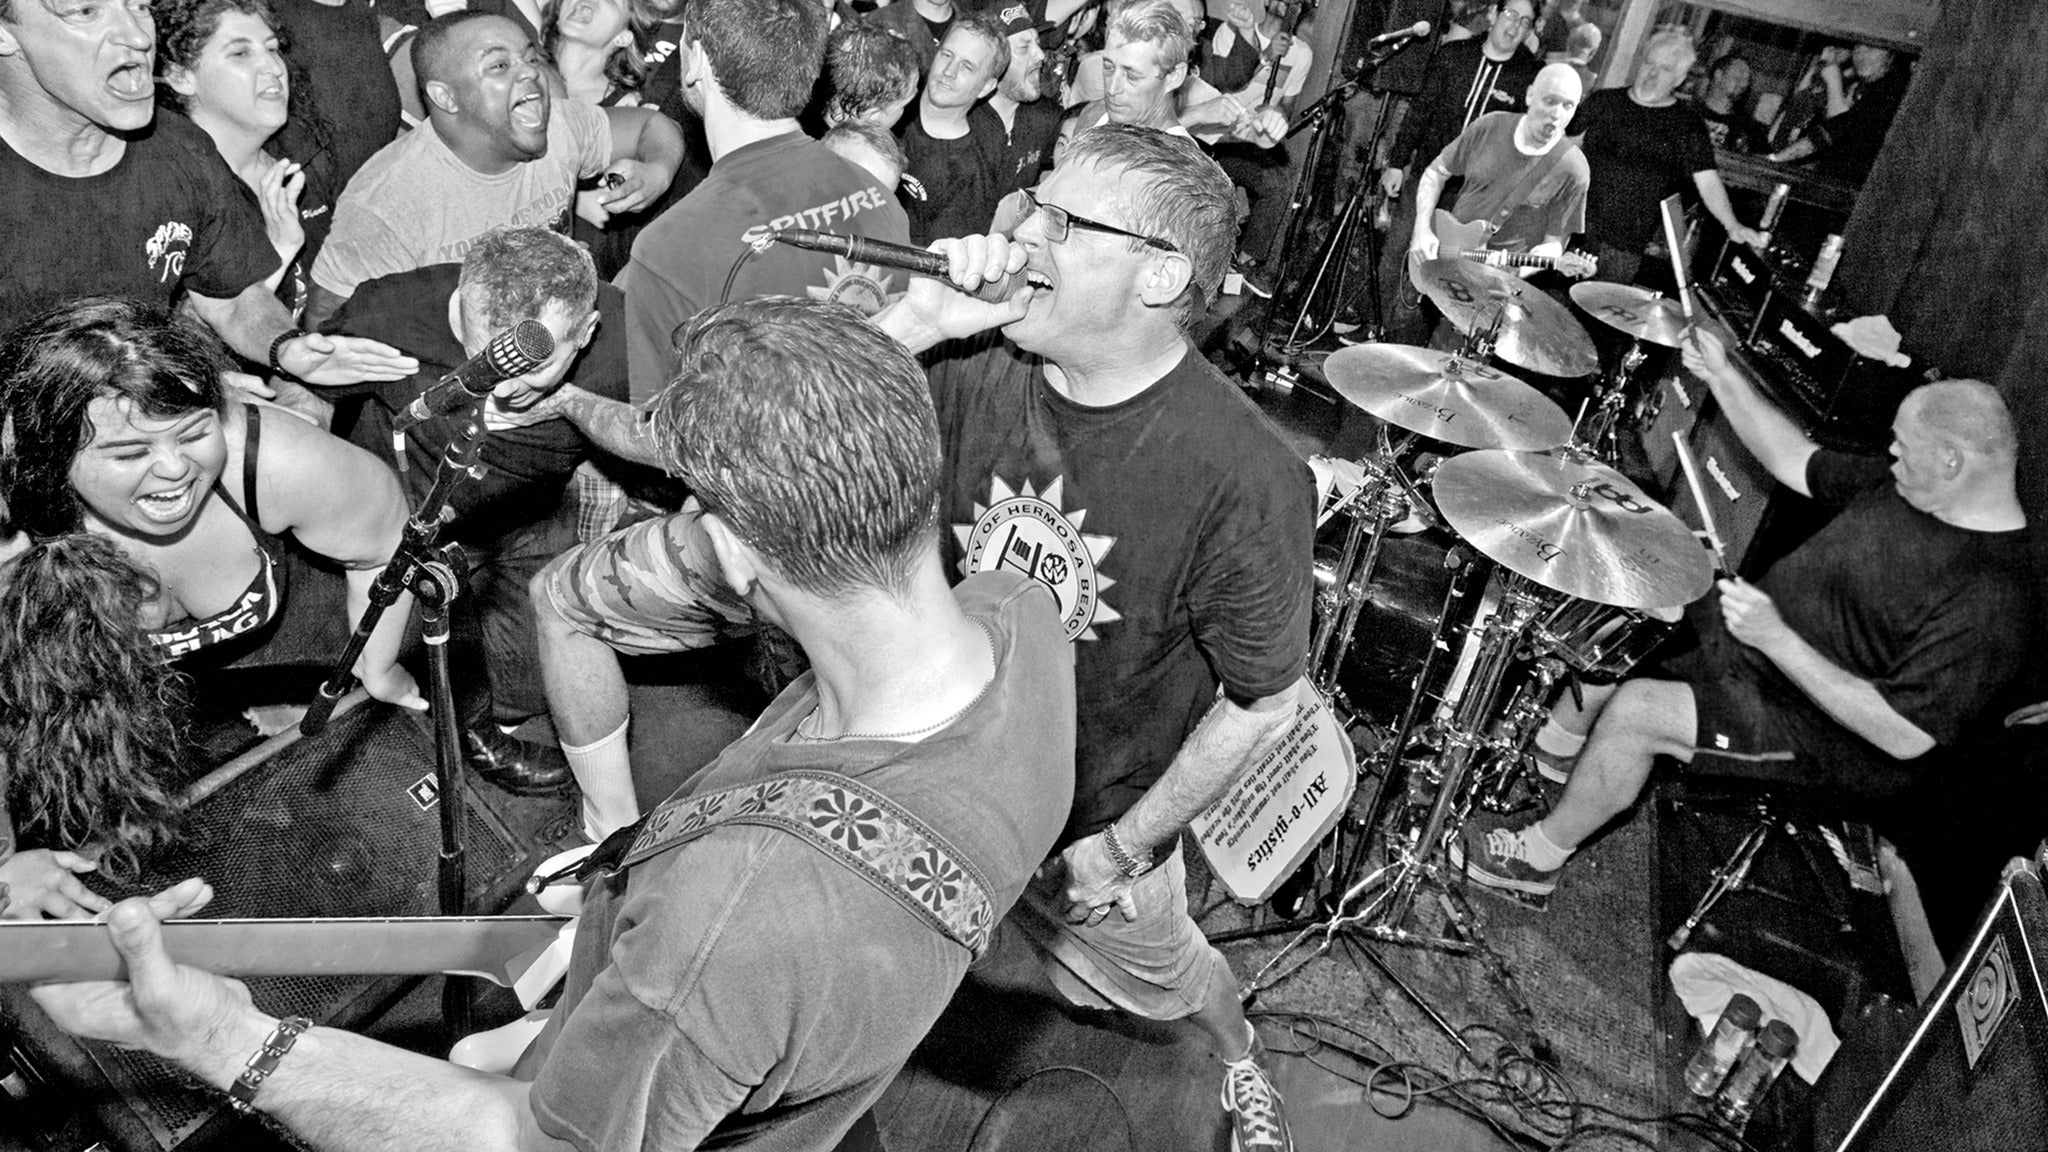 Descendents at Knitting Factory Spokane - WA